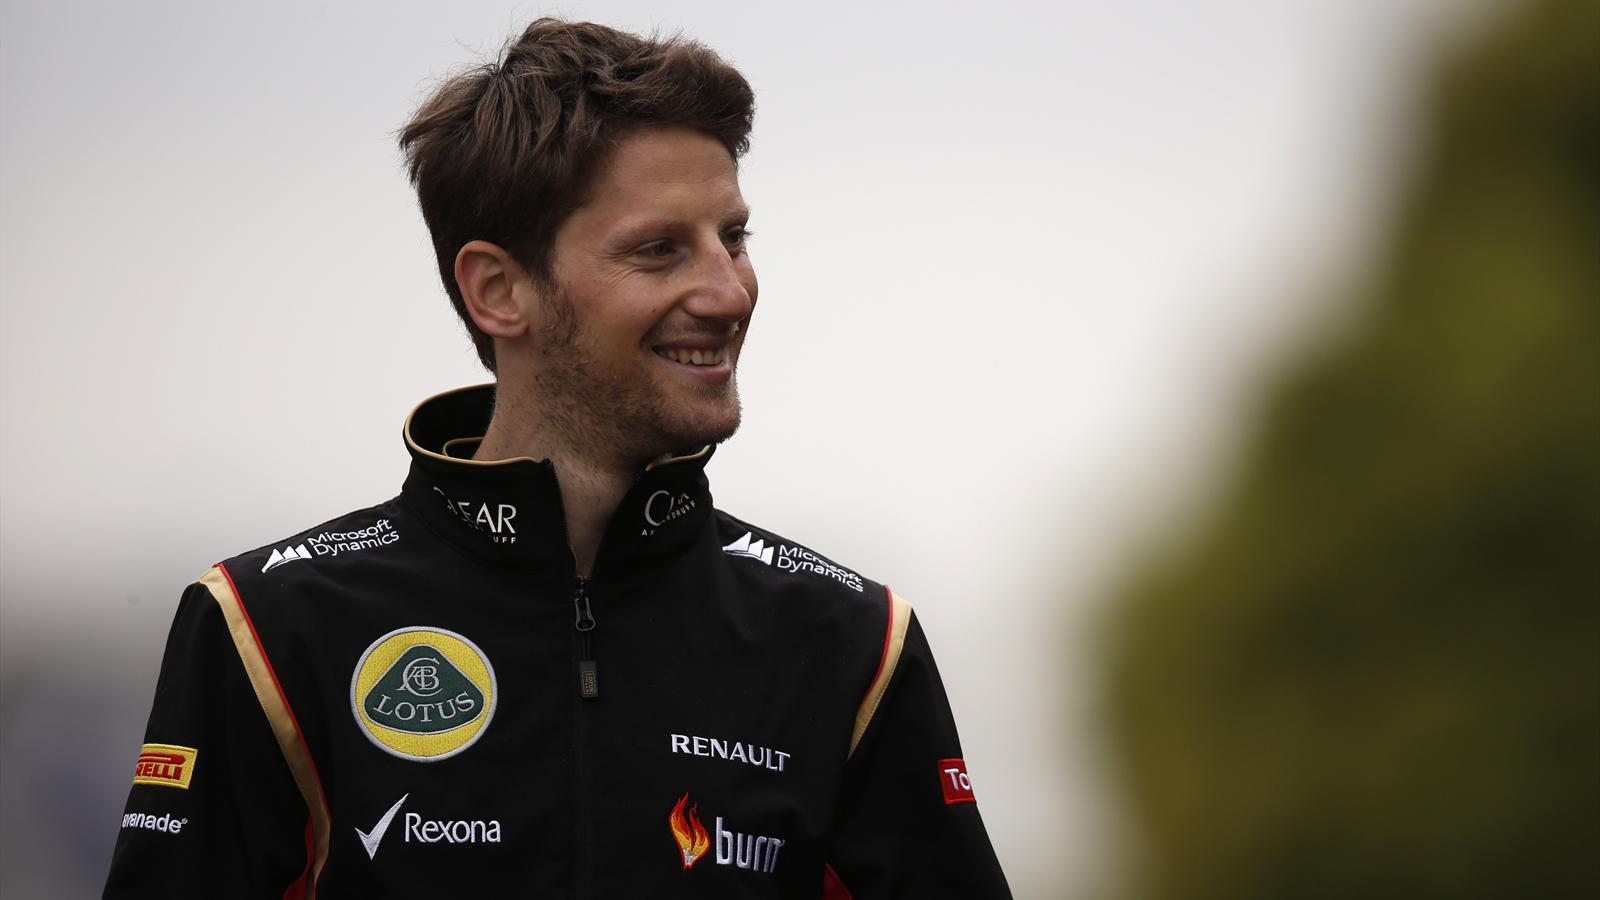 Romain Grosjean (Lotus) - GP of China 2014